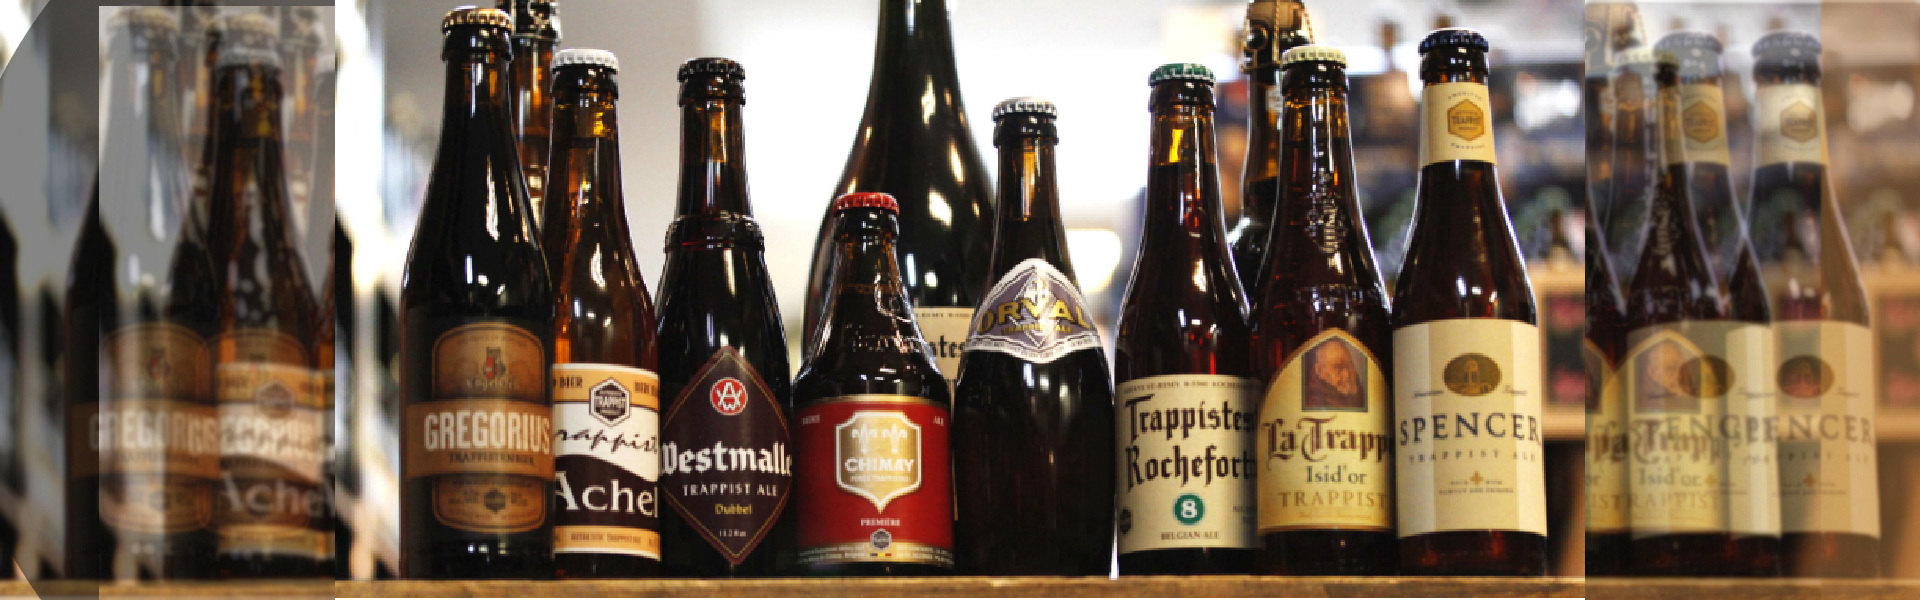 Trappist beers!